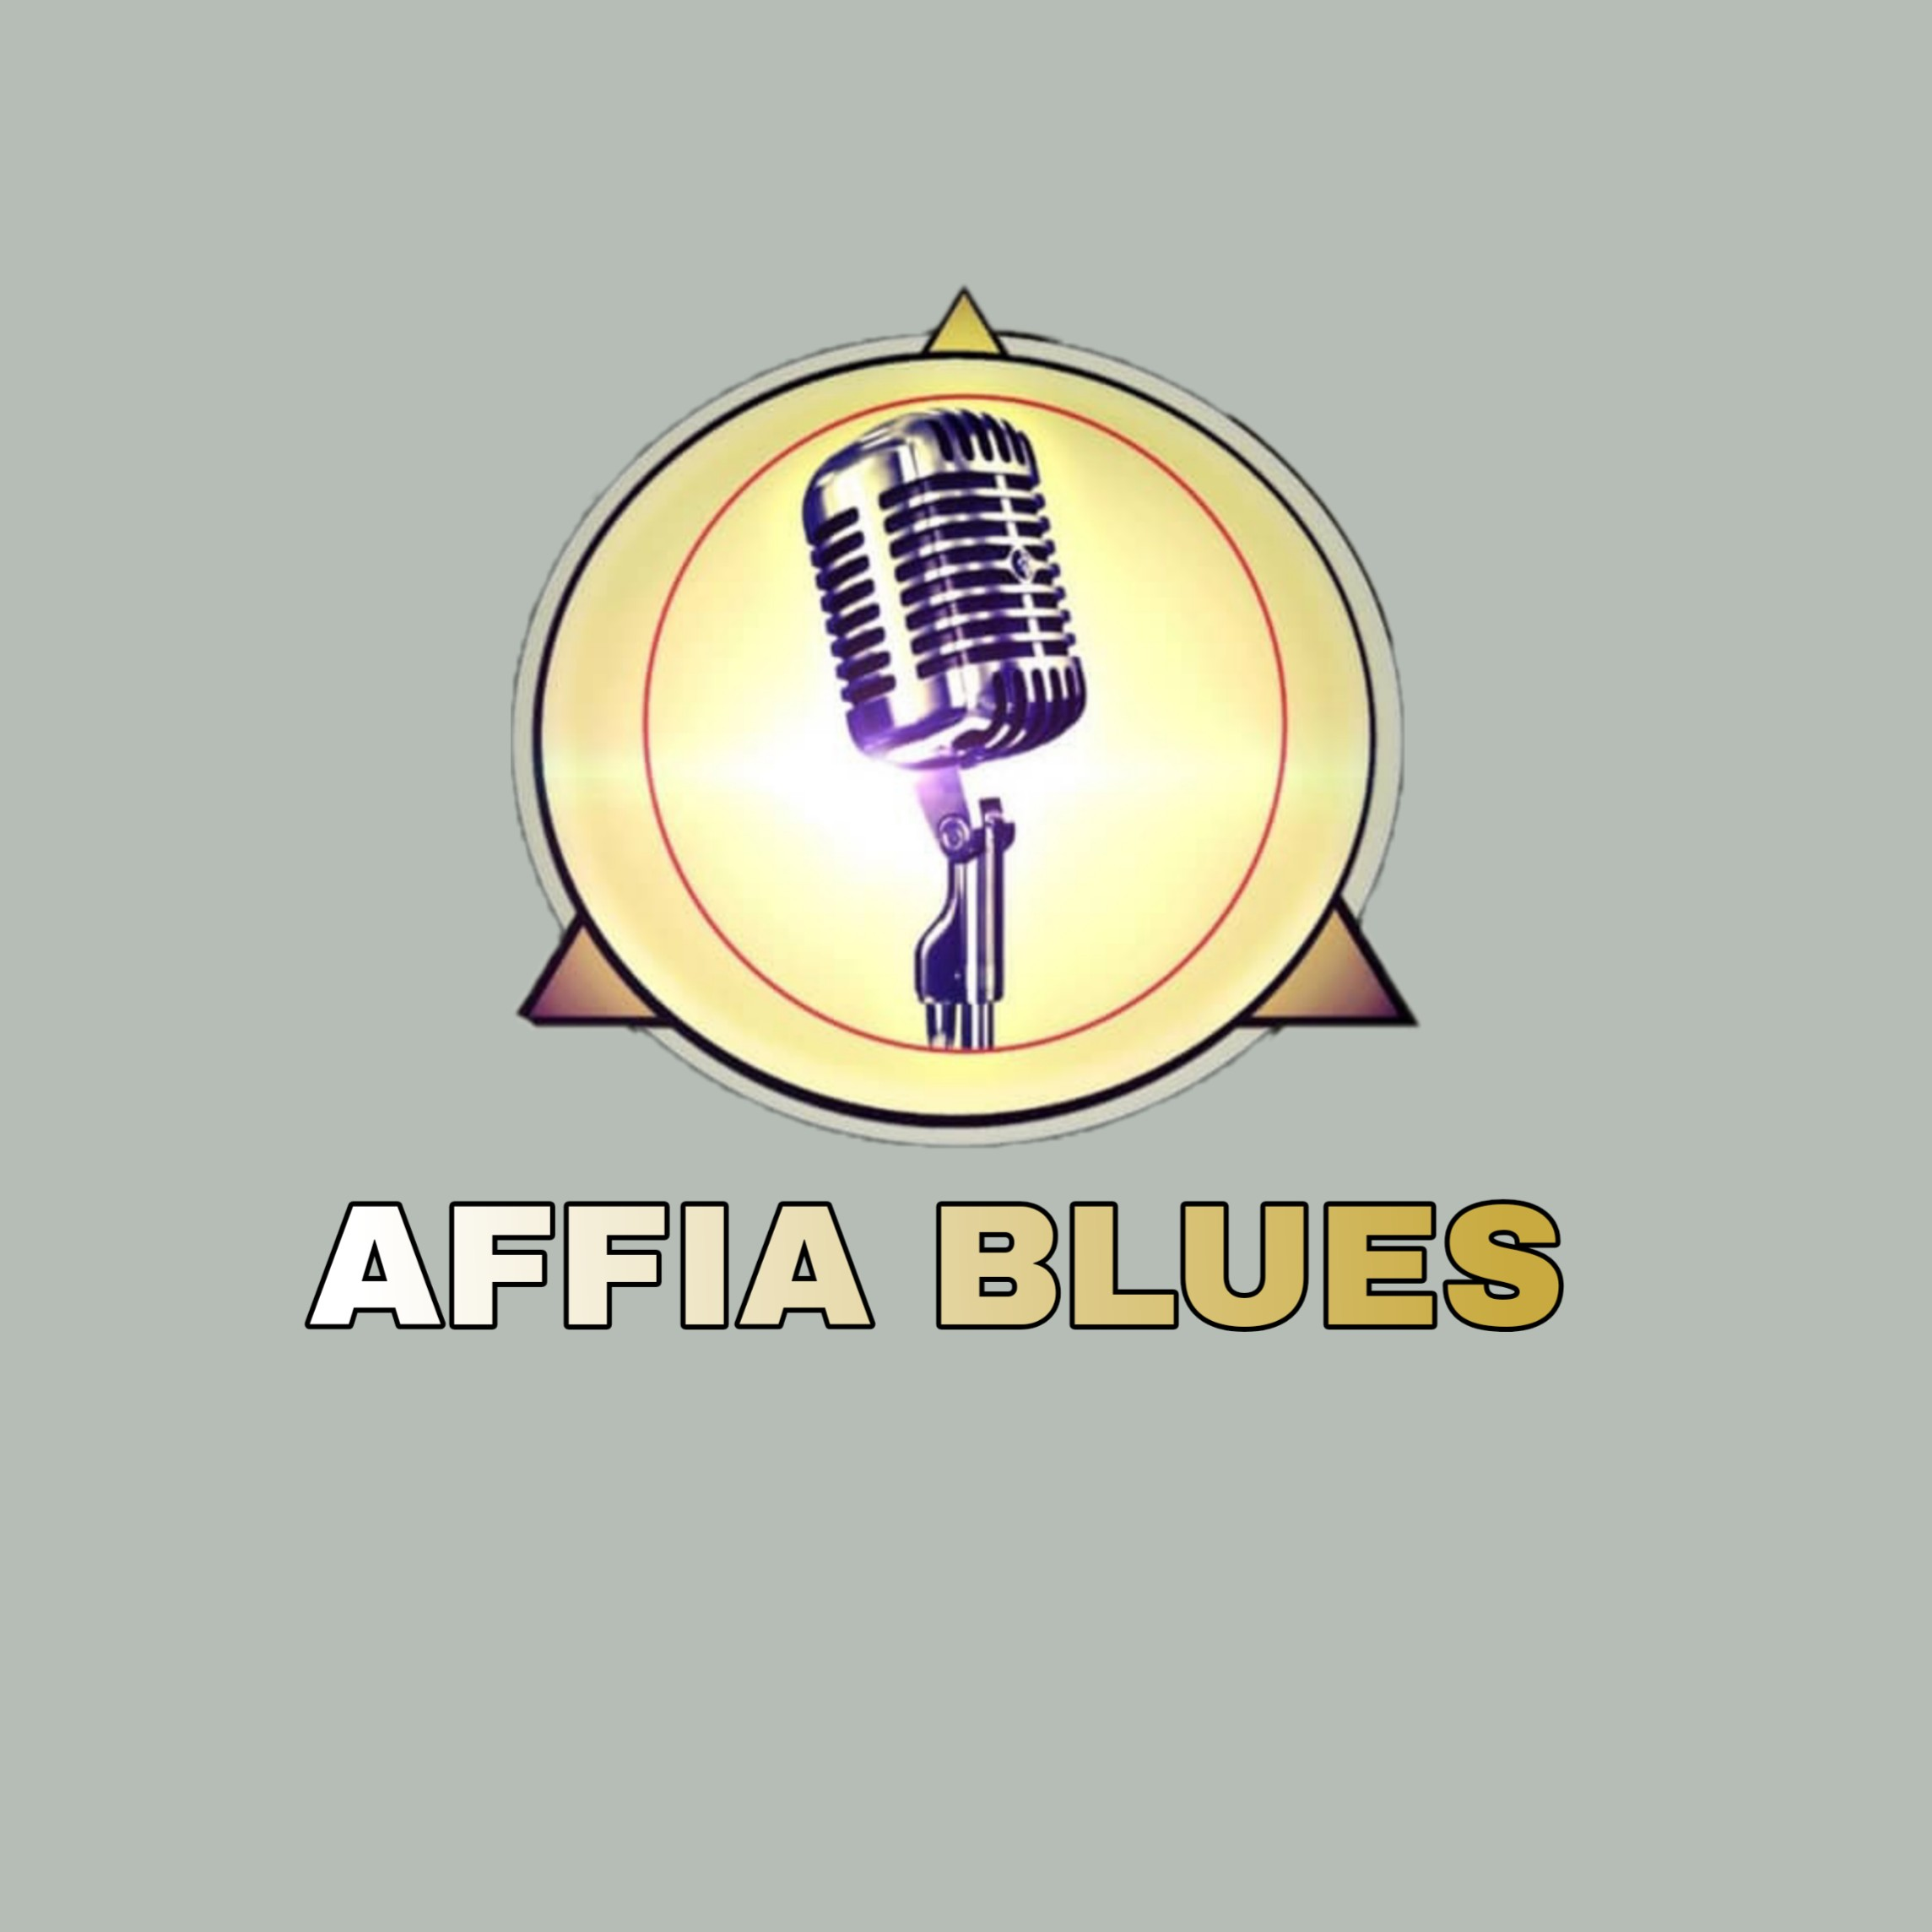 About AFFIA BLUES